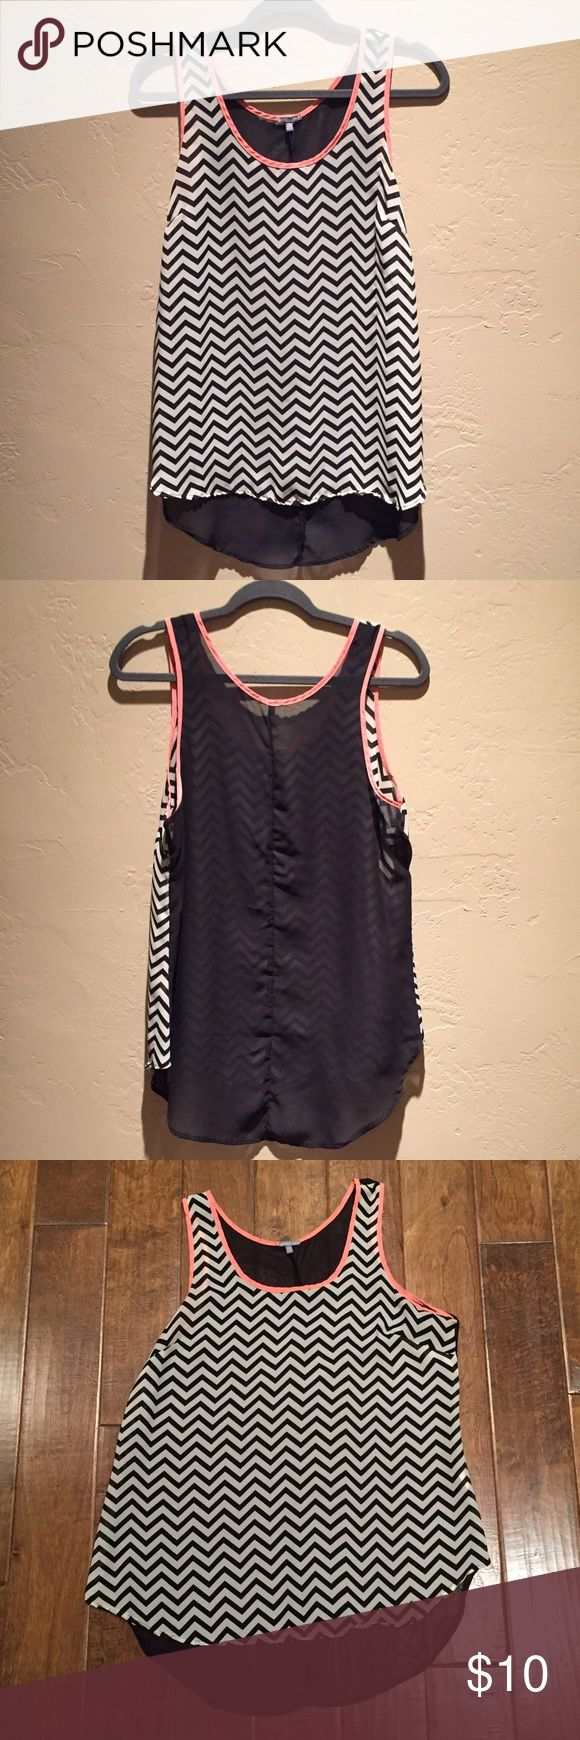 NWOT chevron top Chevron chiffon tank top with pink trim, never worn Charlotte Russe Tops Tank Tops